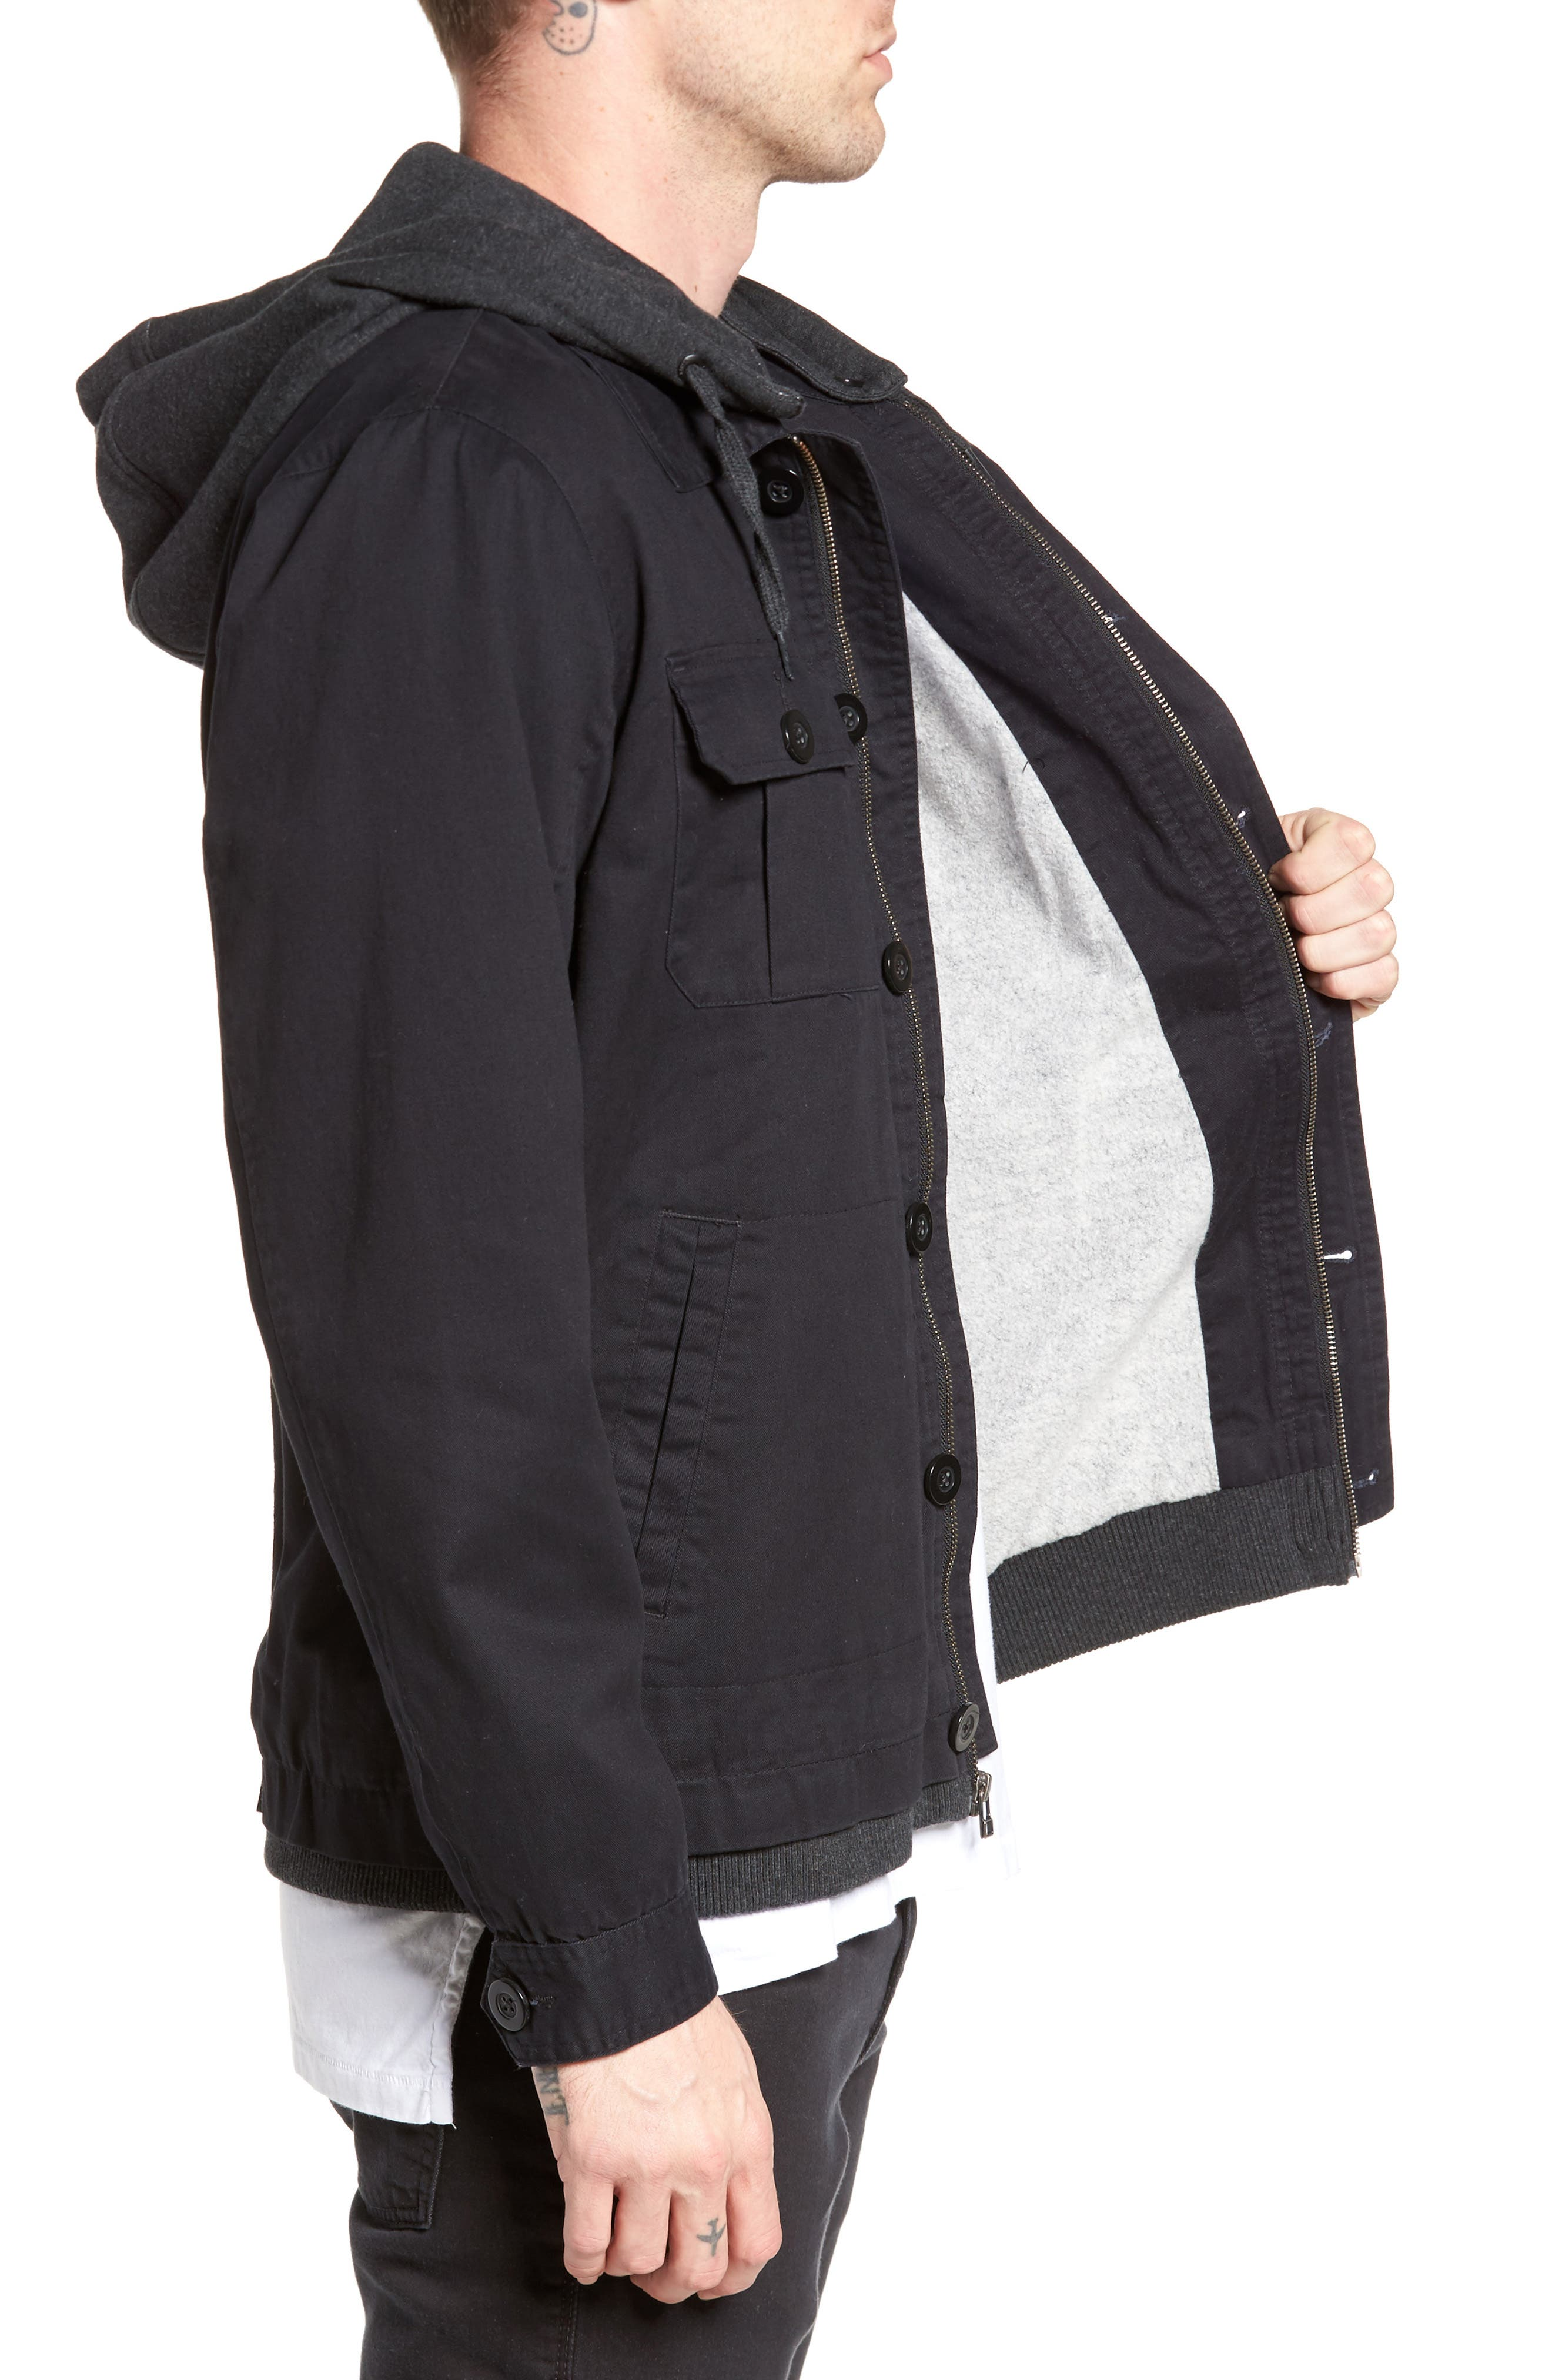 Droogs Field Jacket with Detachable Hood,                             Alternate thumbnail 3, color,                             Grey/ Heather Grey